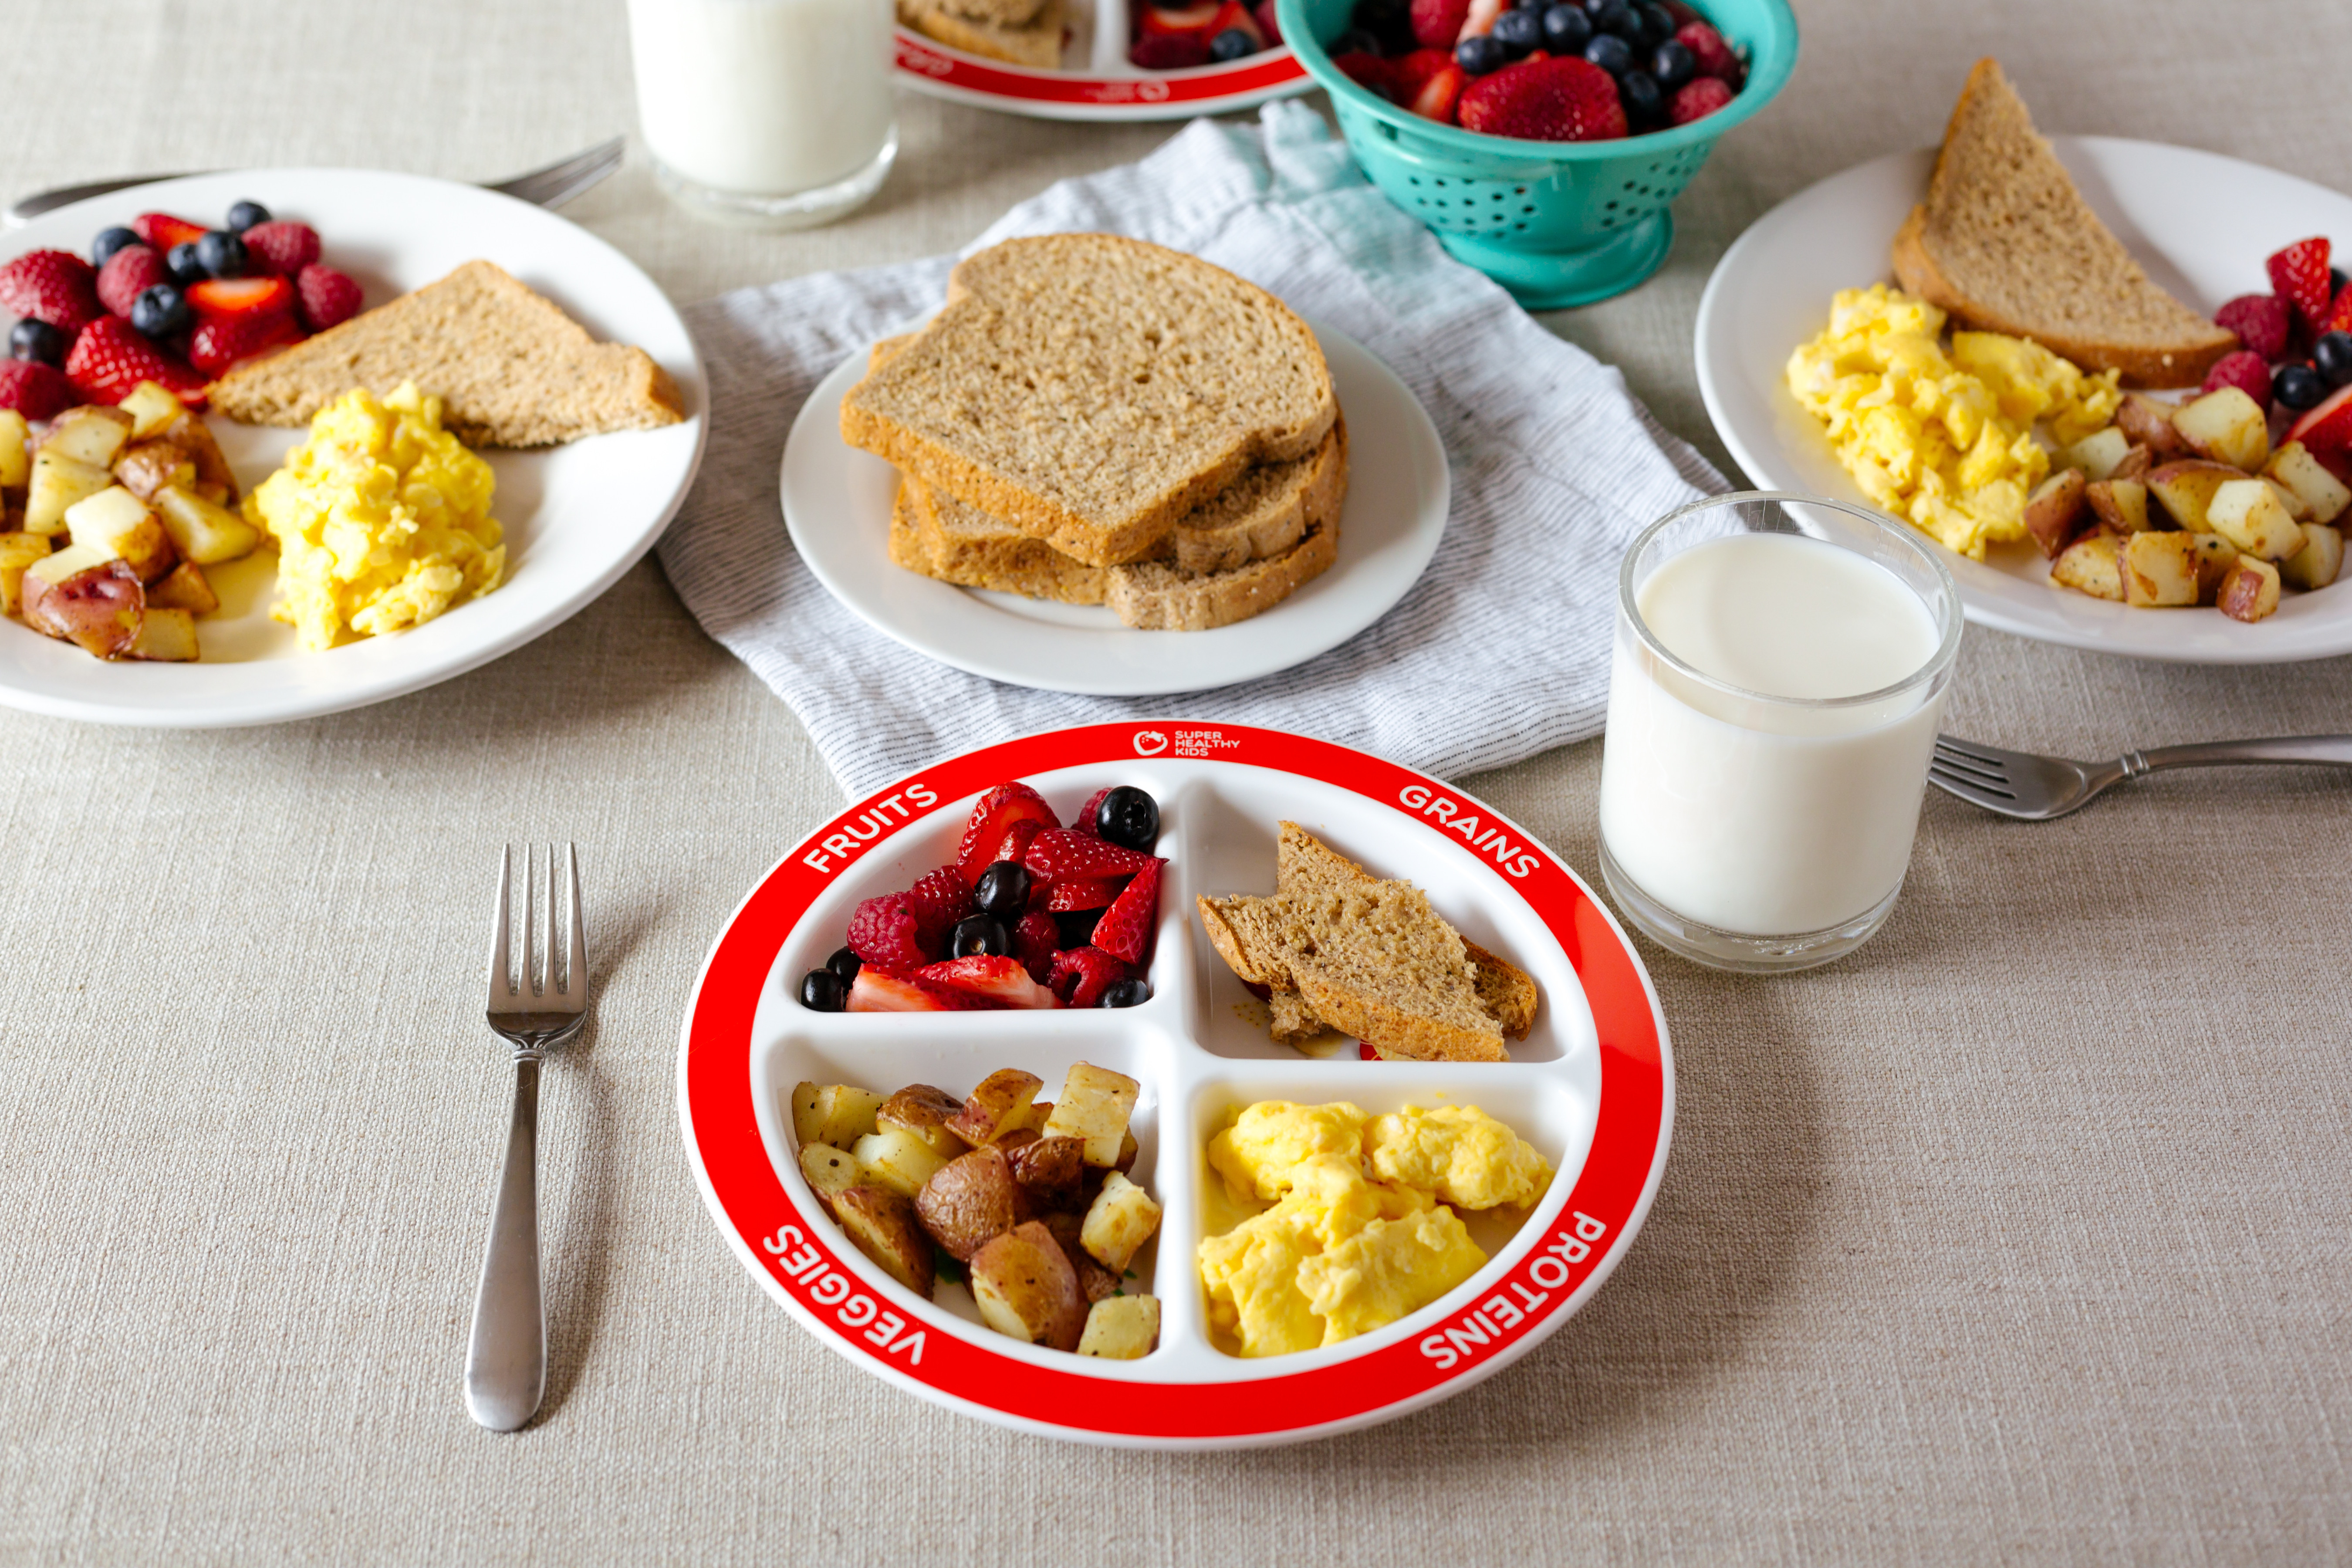 Healthy Foods For Breakfast  Healthy Balanced Breakfast with MyPlate